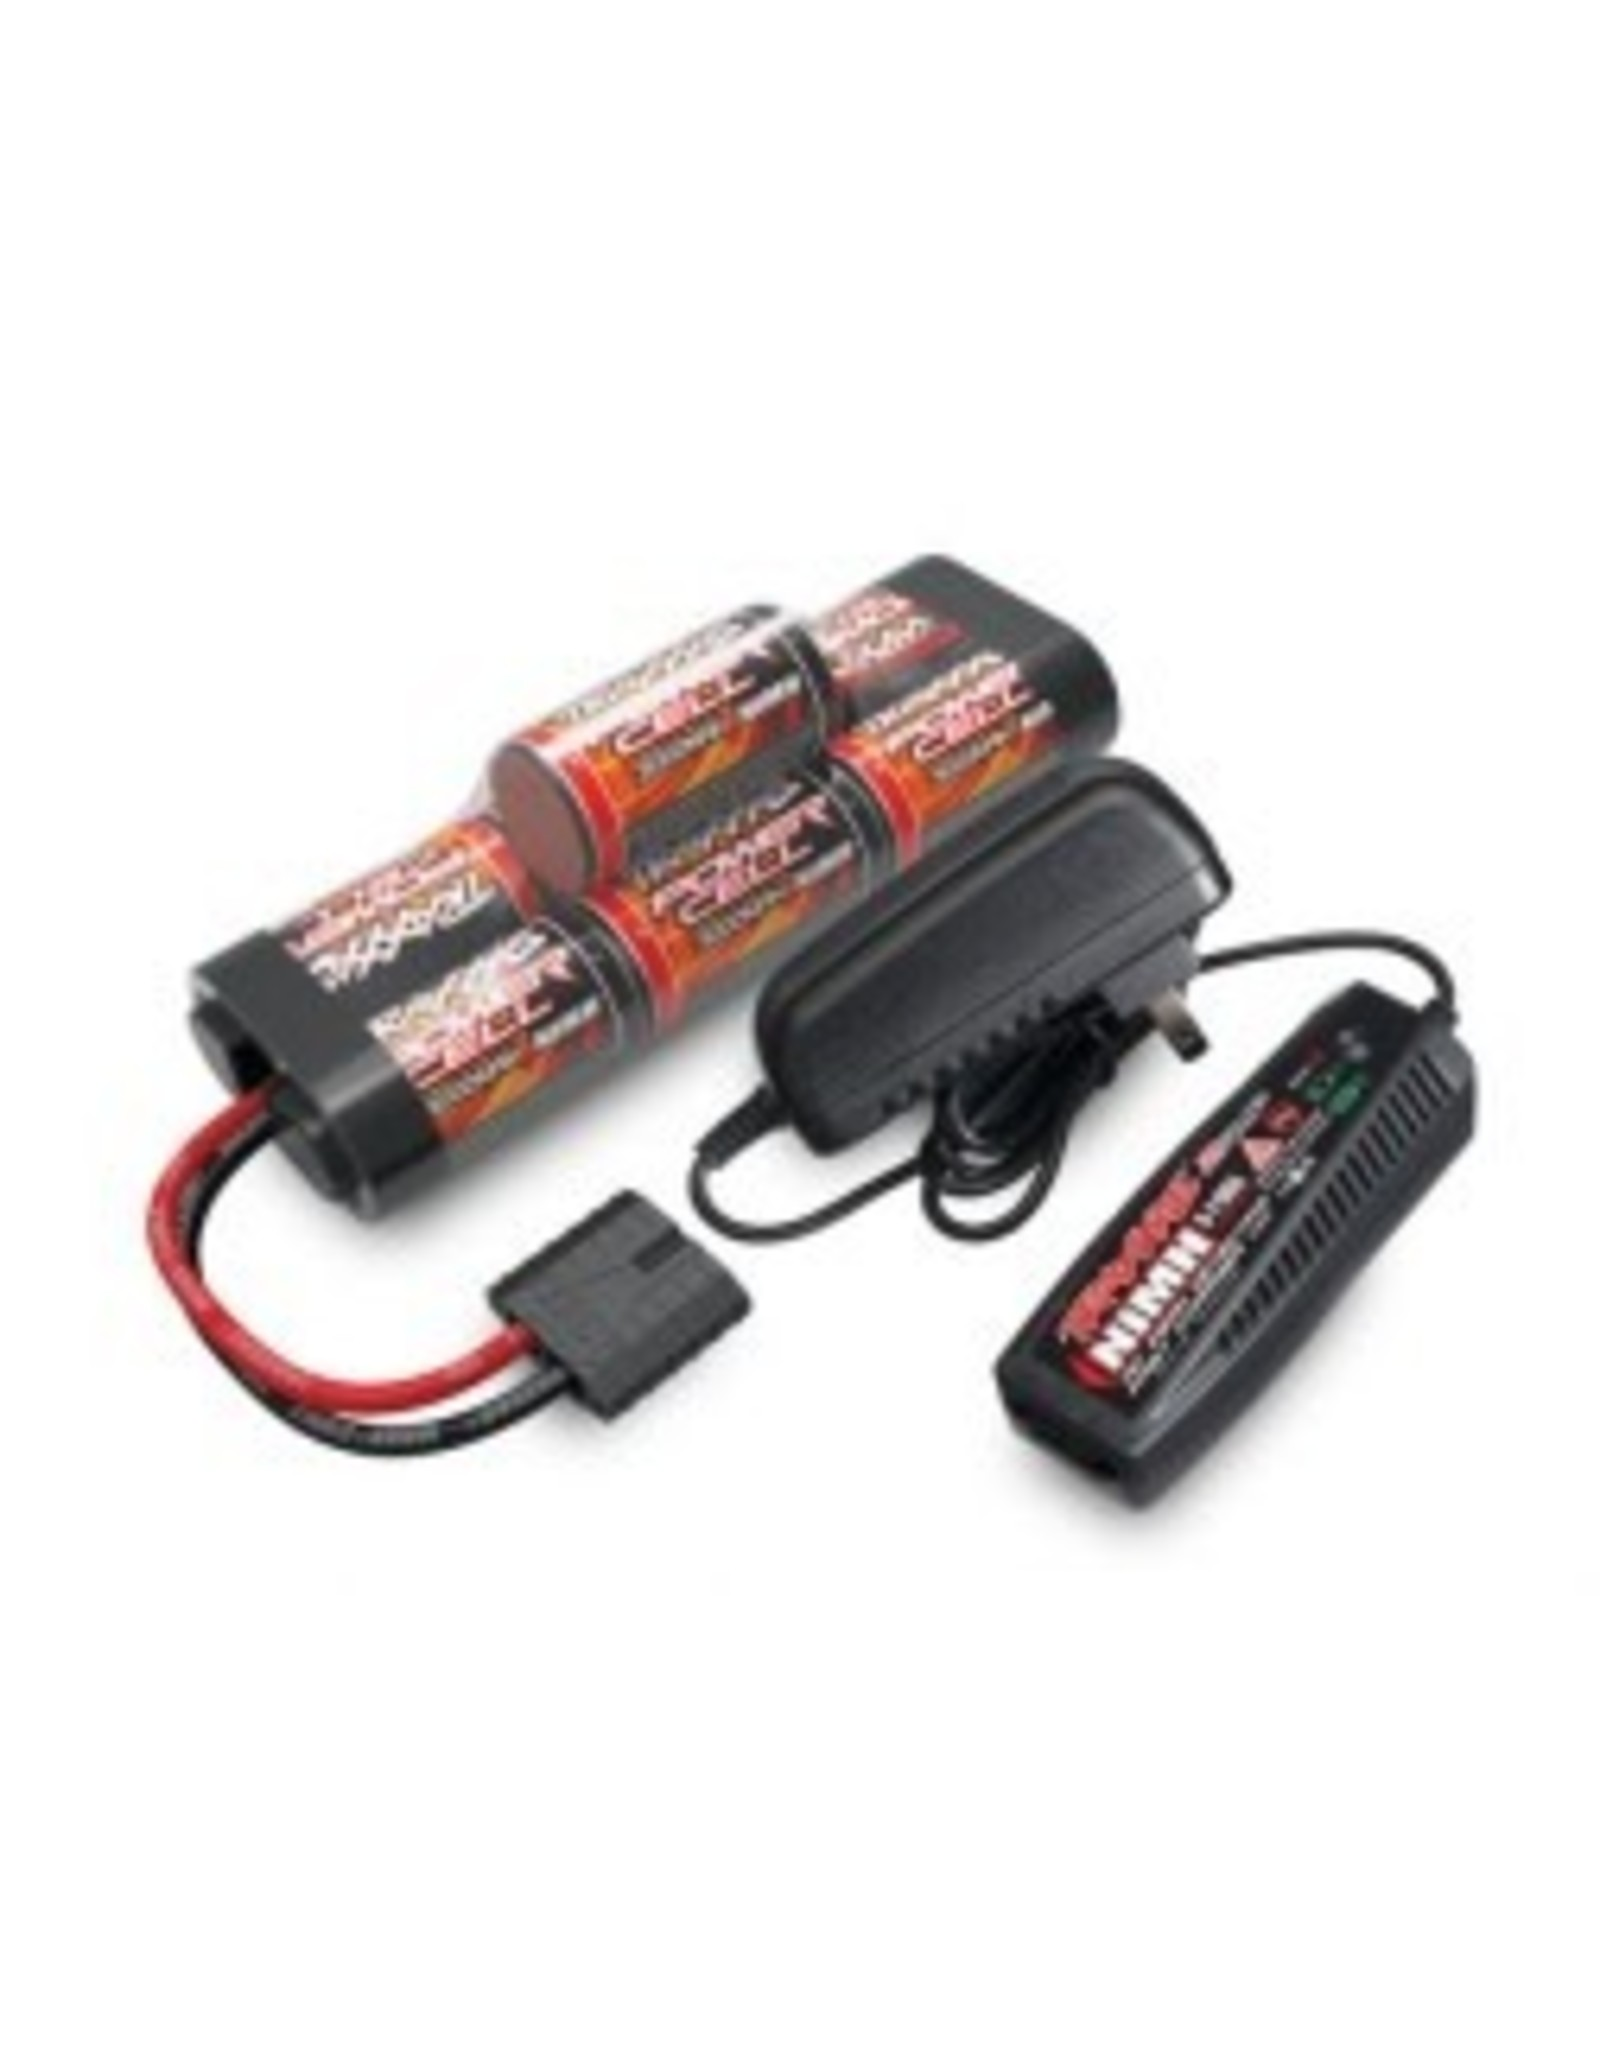 Traxxas Battery/charger completer pack (includes #2969 2-amp NiMH peak detecting AC charger (1), #2926X 3000mAh 8.4V 7-cell NiMH battery (1))